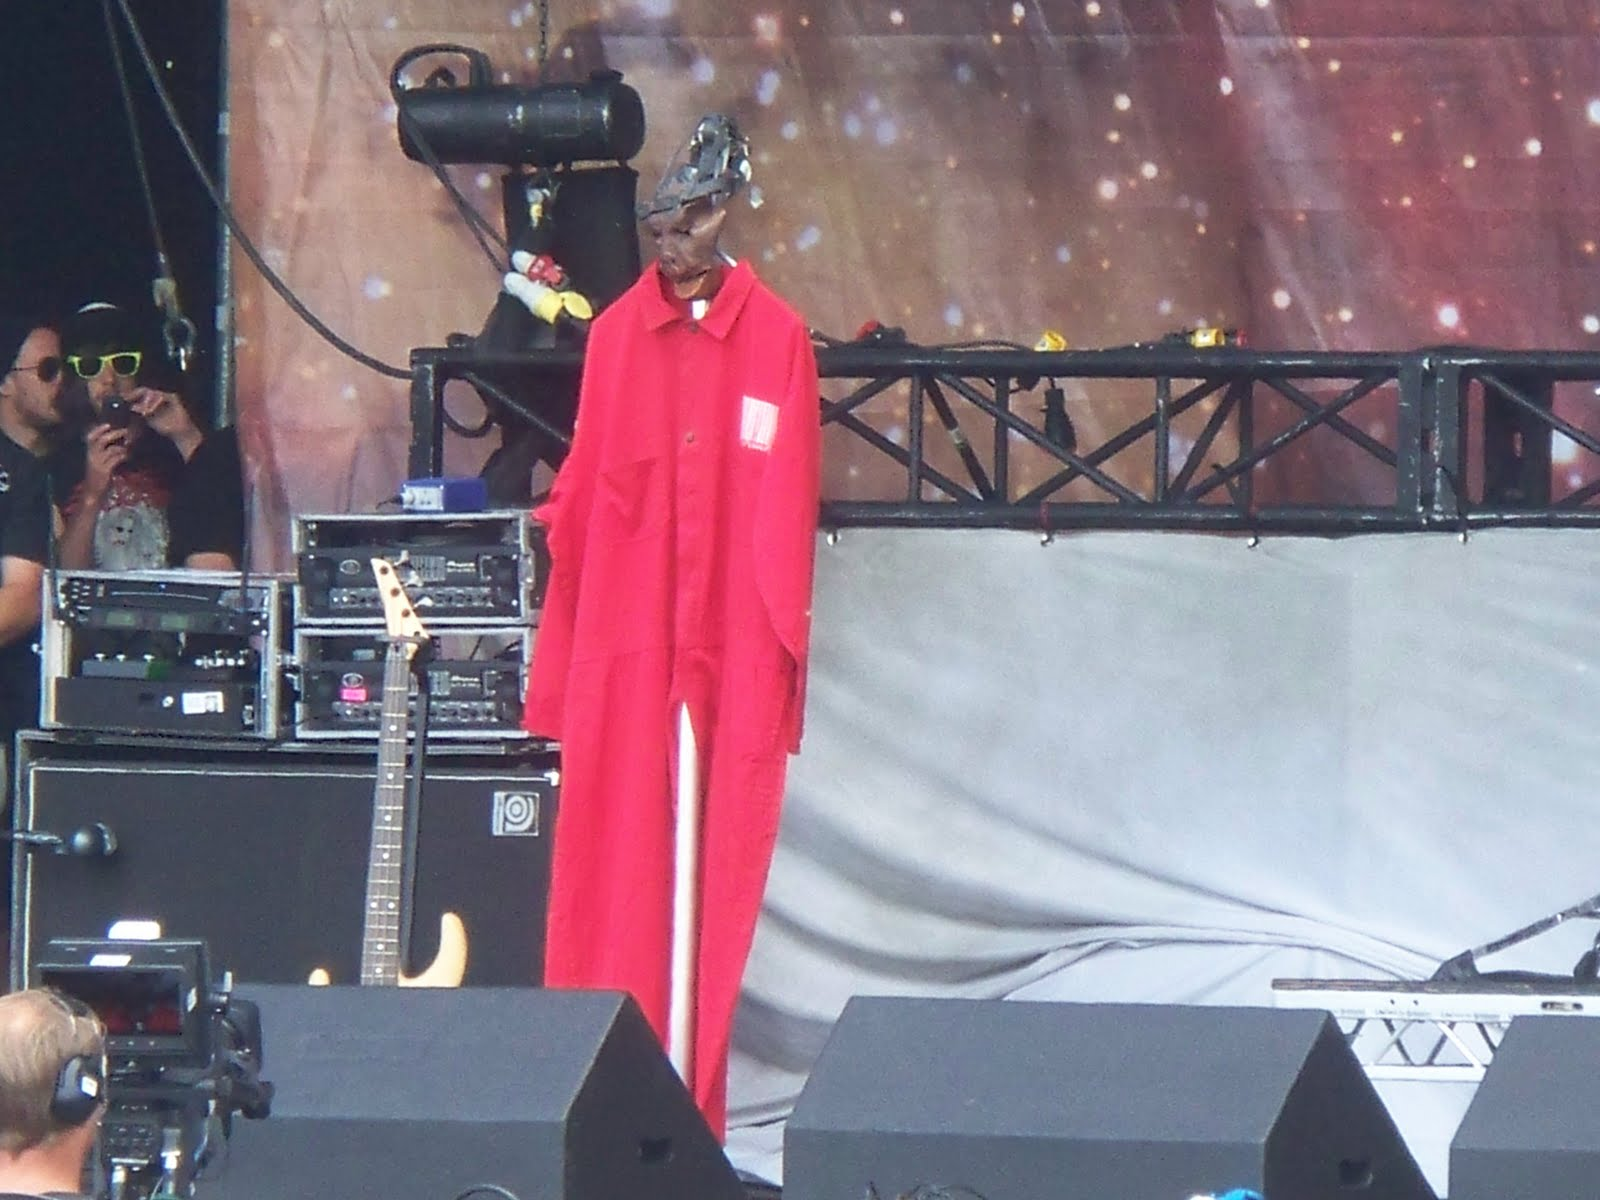 Bazza's Blog: Review – Sonisphere Festival 2011 – Knebworth